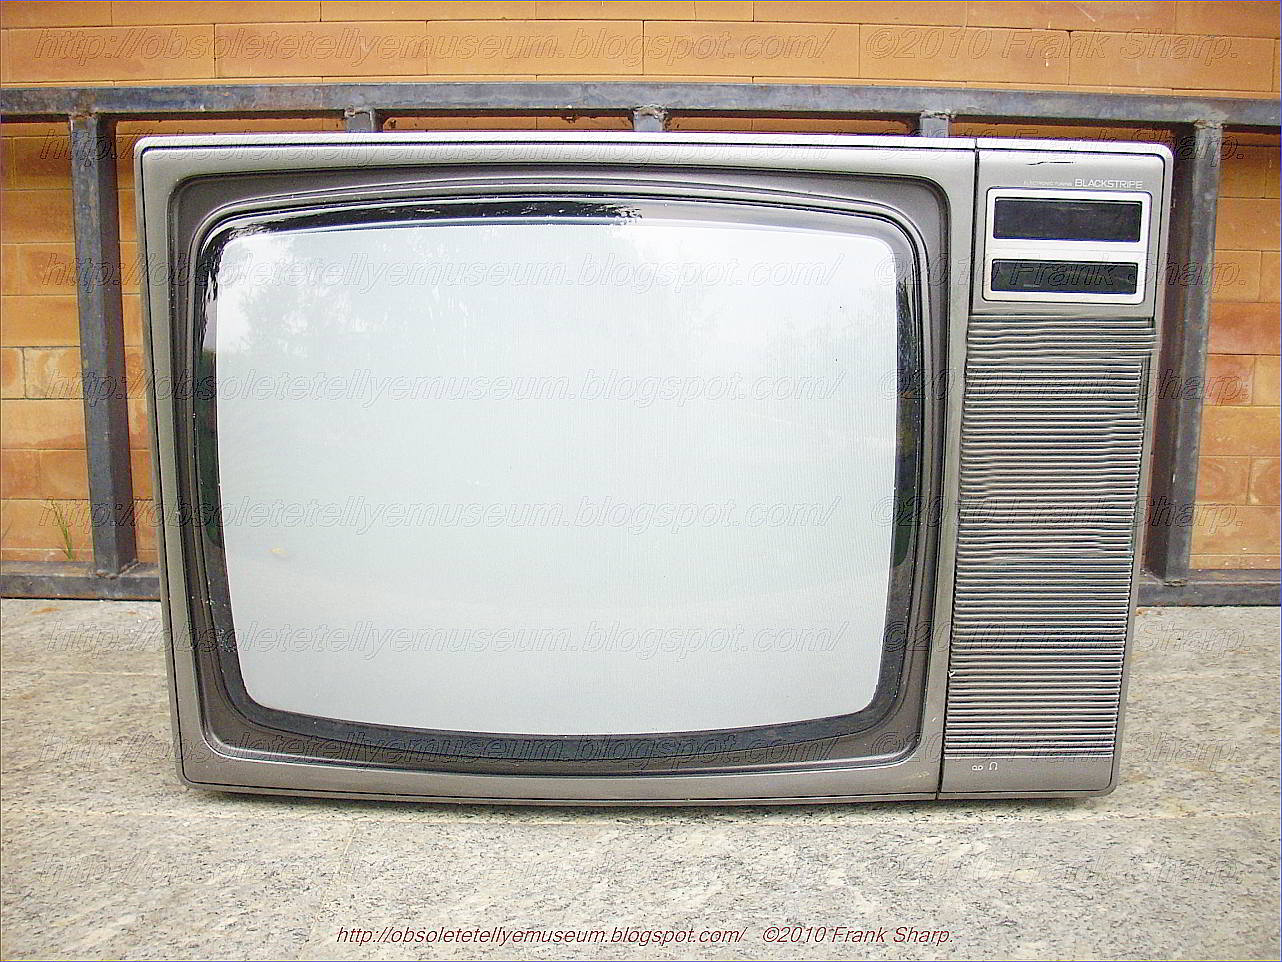 medium resolution of toshiba color tv model n c2295t1 year 1980